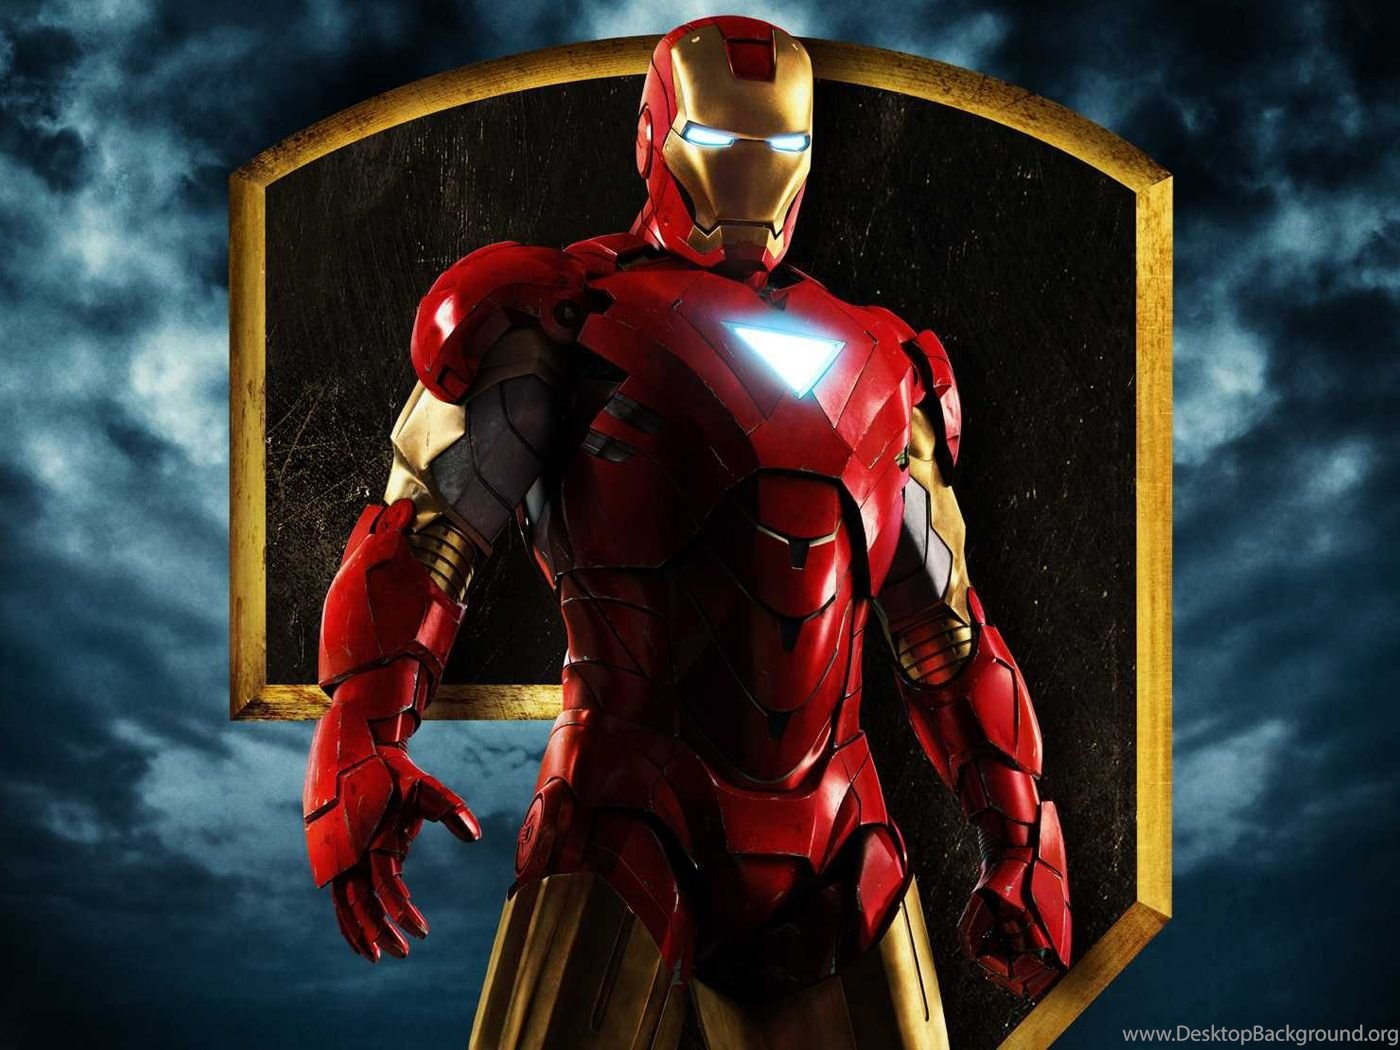 Iron Man 3 Wallpaper Hd I4 Jpg Desktop Background